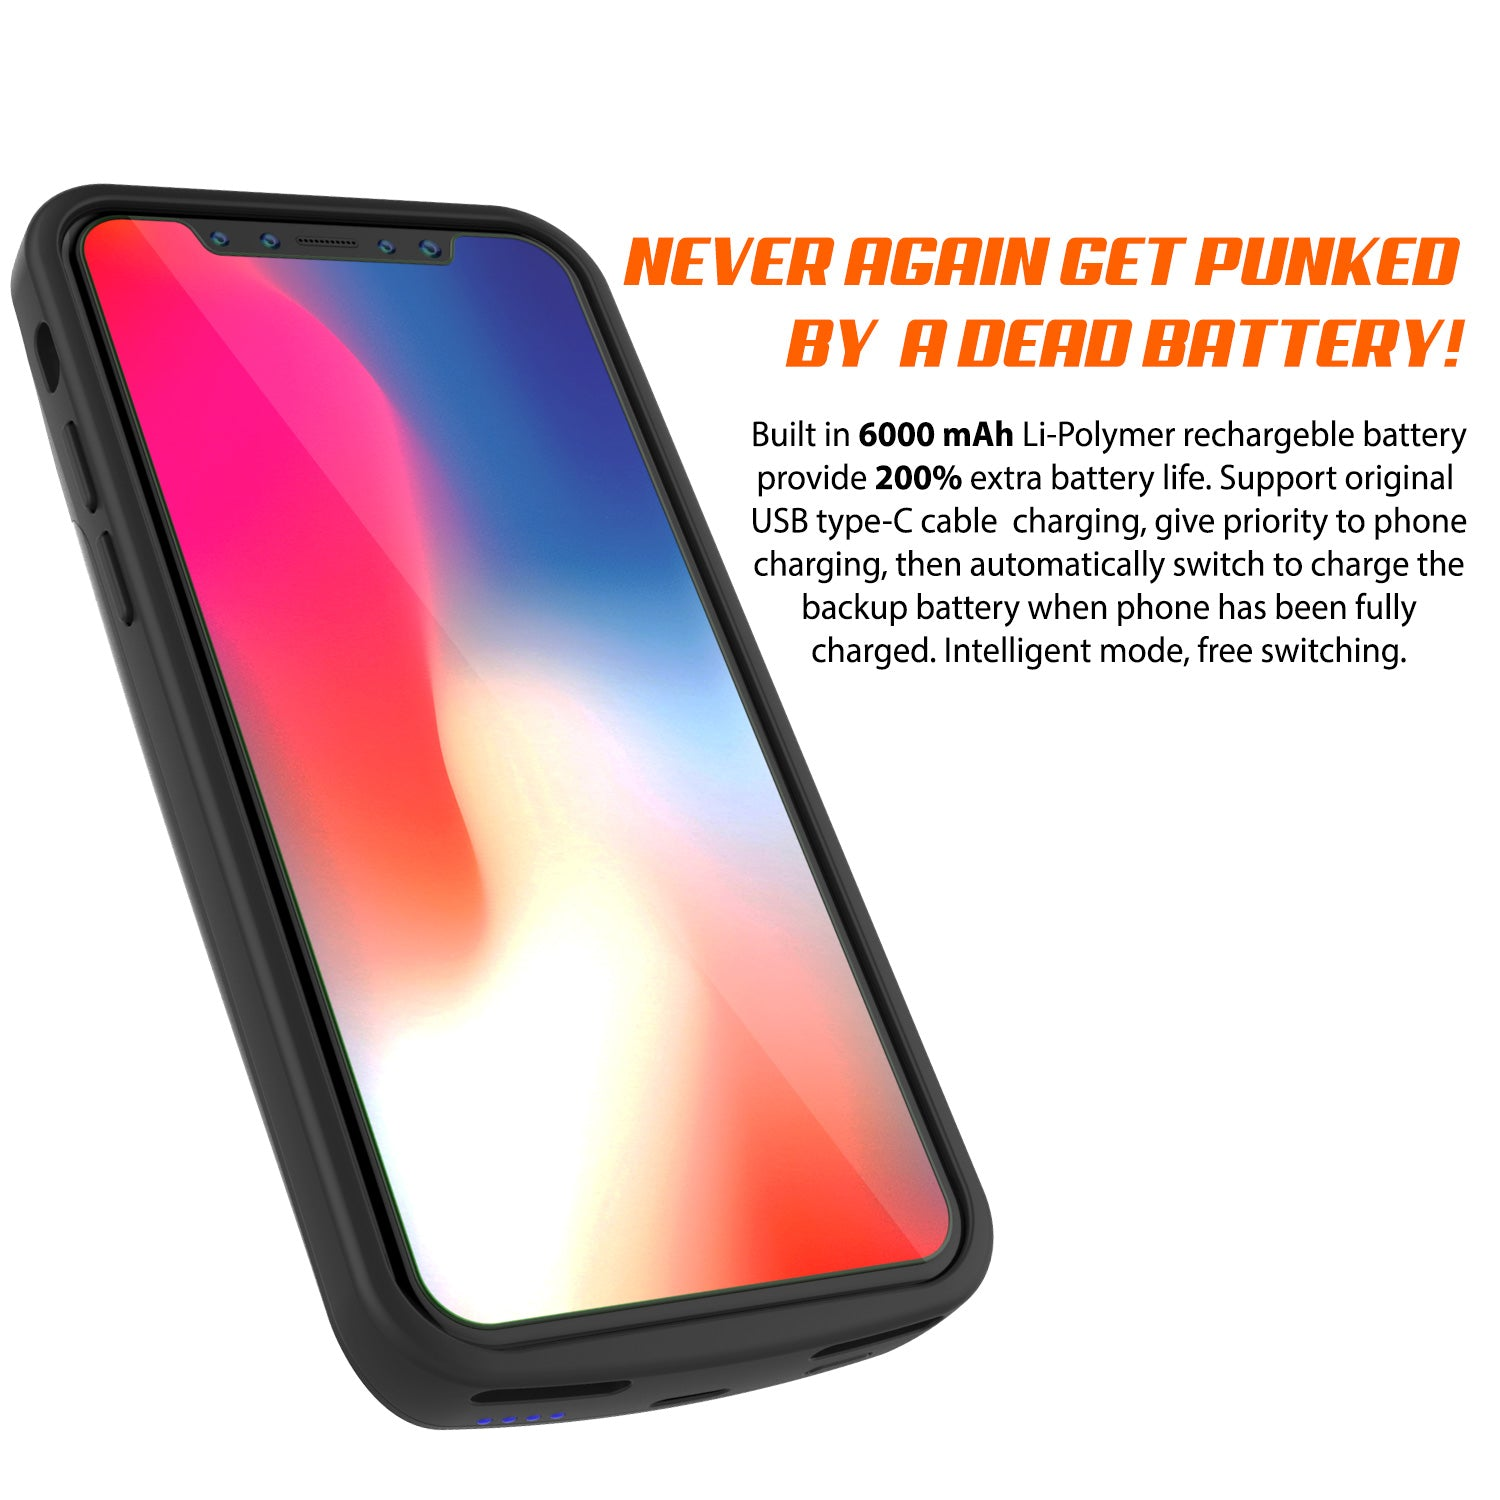 new product f198d df80d iPhone X Battery Case, PunkJuice 5000mAH Fast Charging Power Bank W/ S